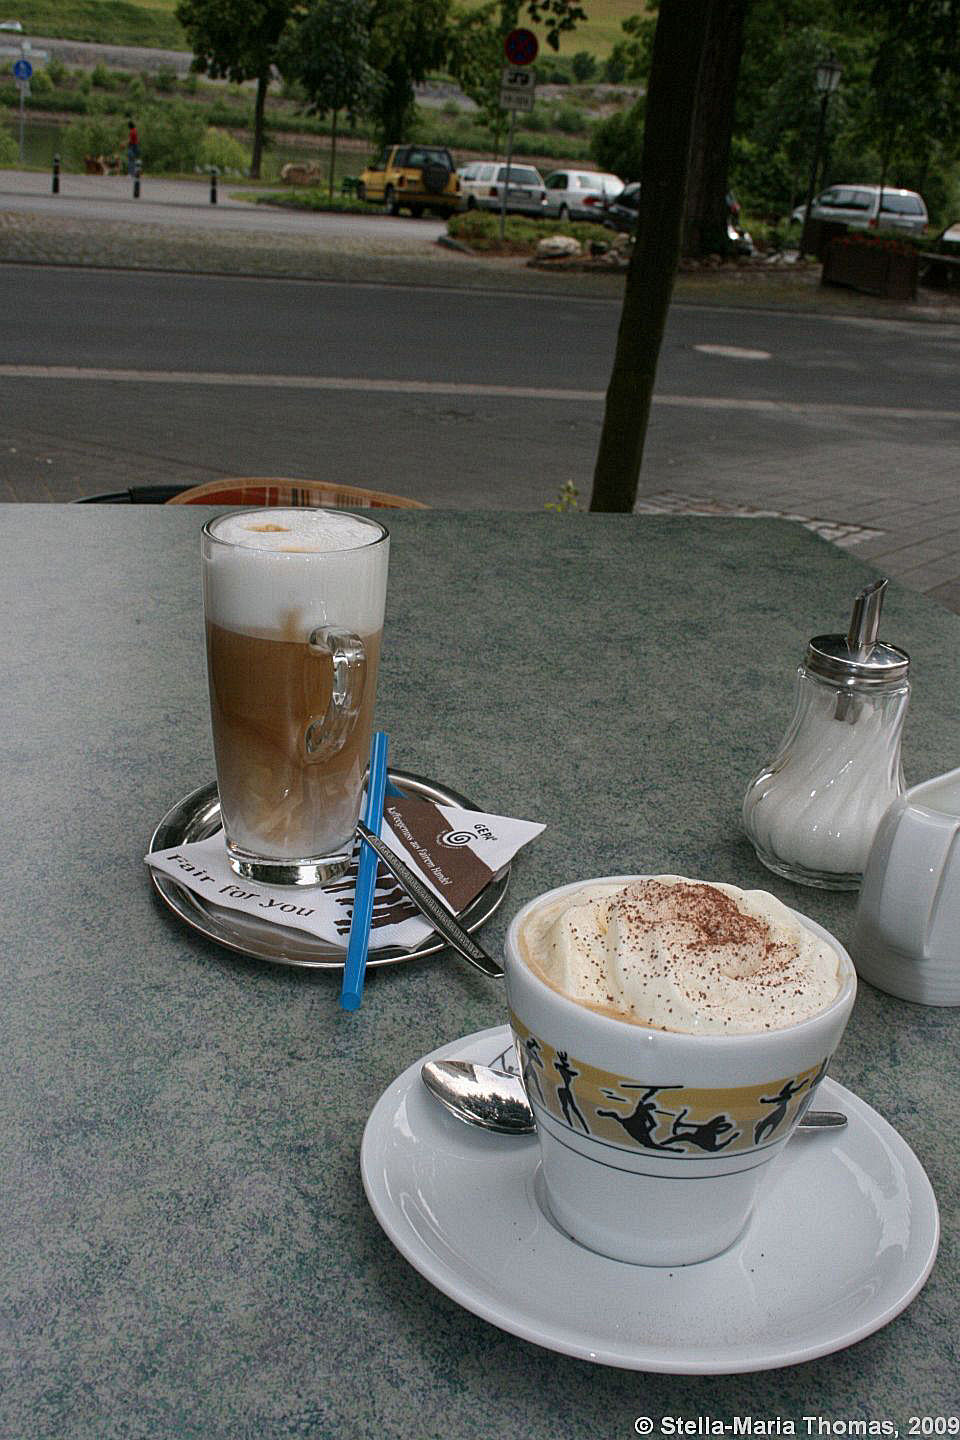 kaffee-pause-in-zeltingen-rachtig-cafe-latte-and-wiener-melange-001_3618252297_o